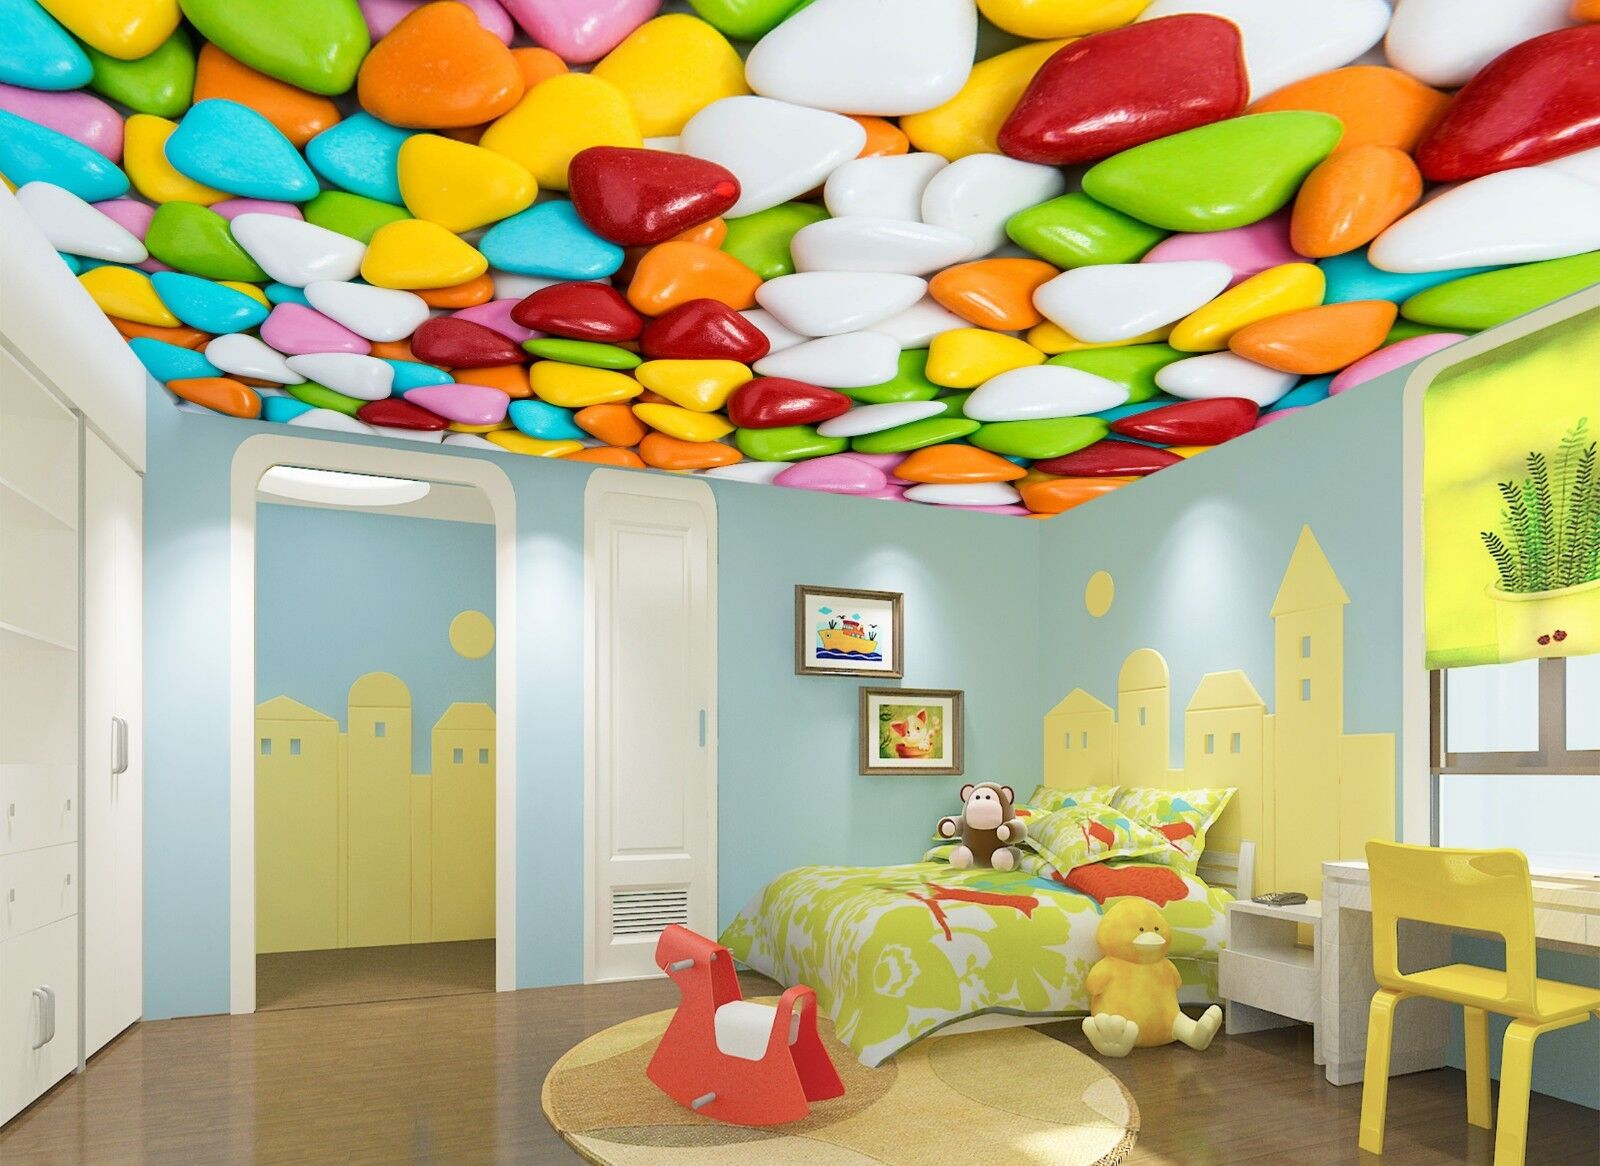 3D Rainbow Sugar 74 Wall Paper Wall Print Decal Wall Deco AJ WALLPAPER Summer